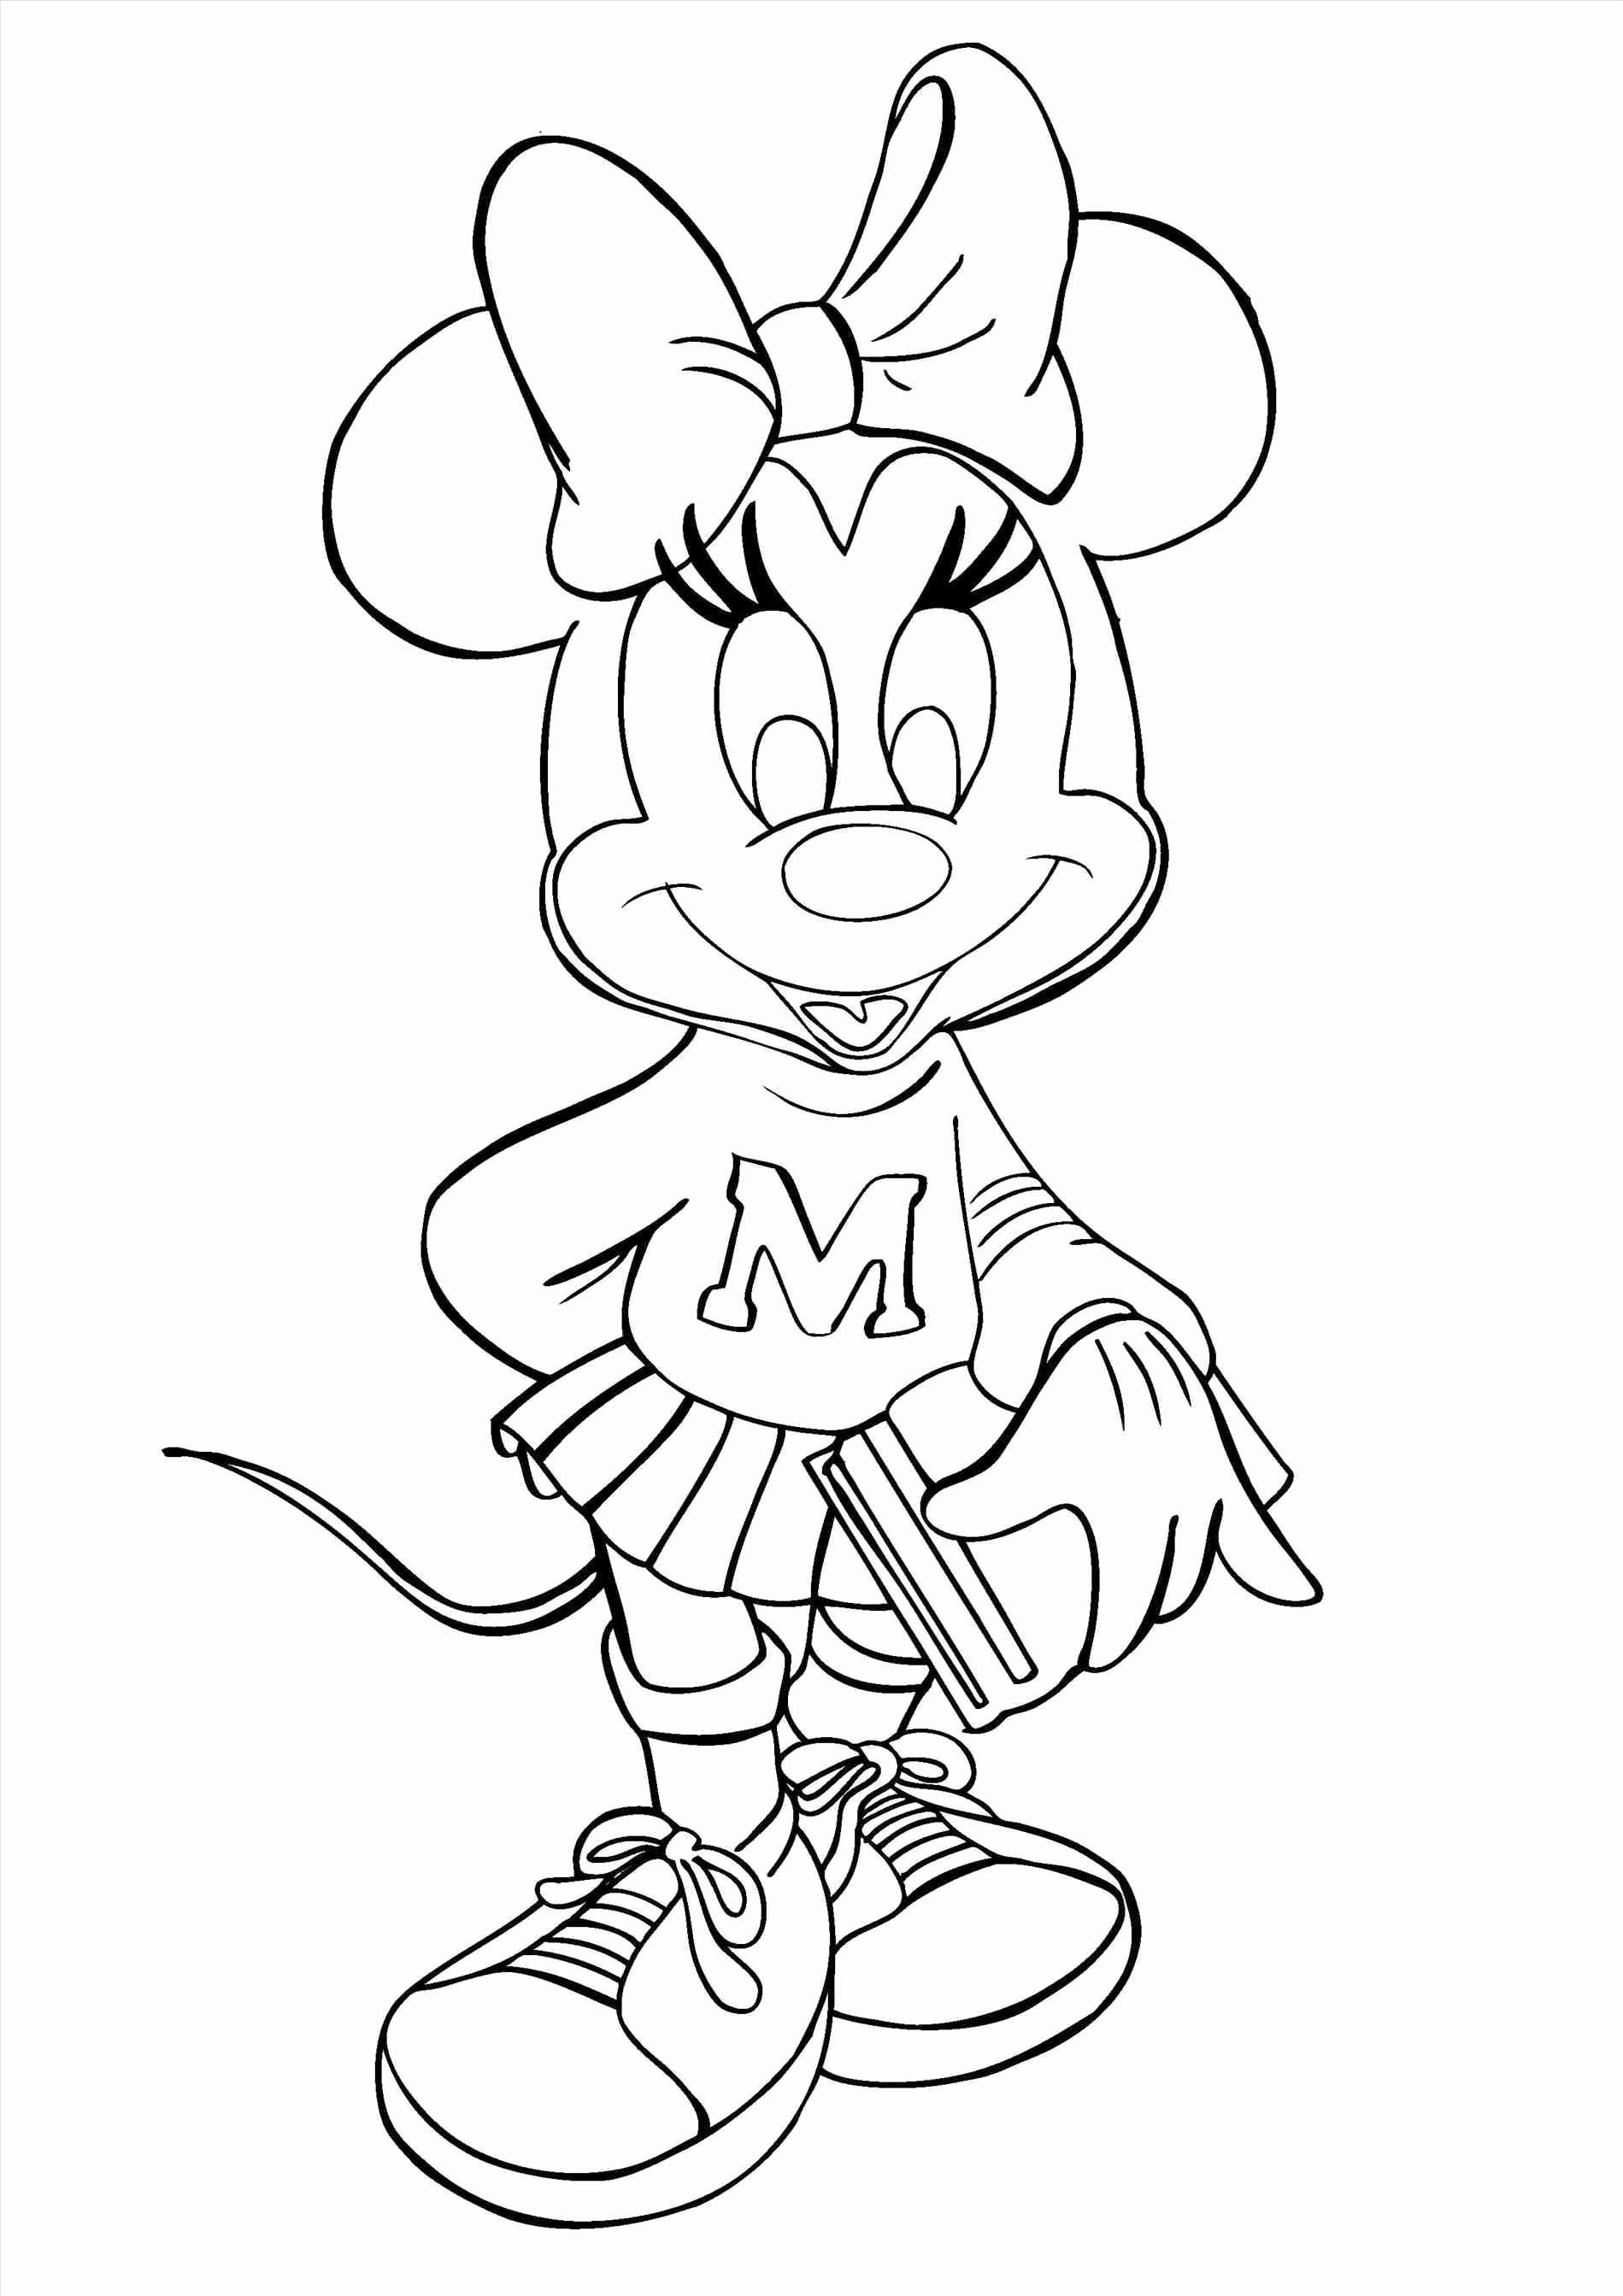 Mangle Coloring Pages At Getdrawings Com Free For Personal Use